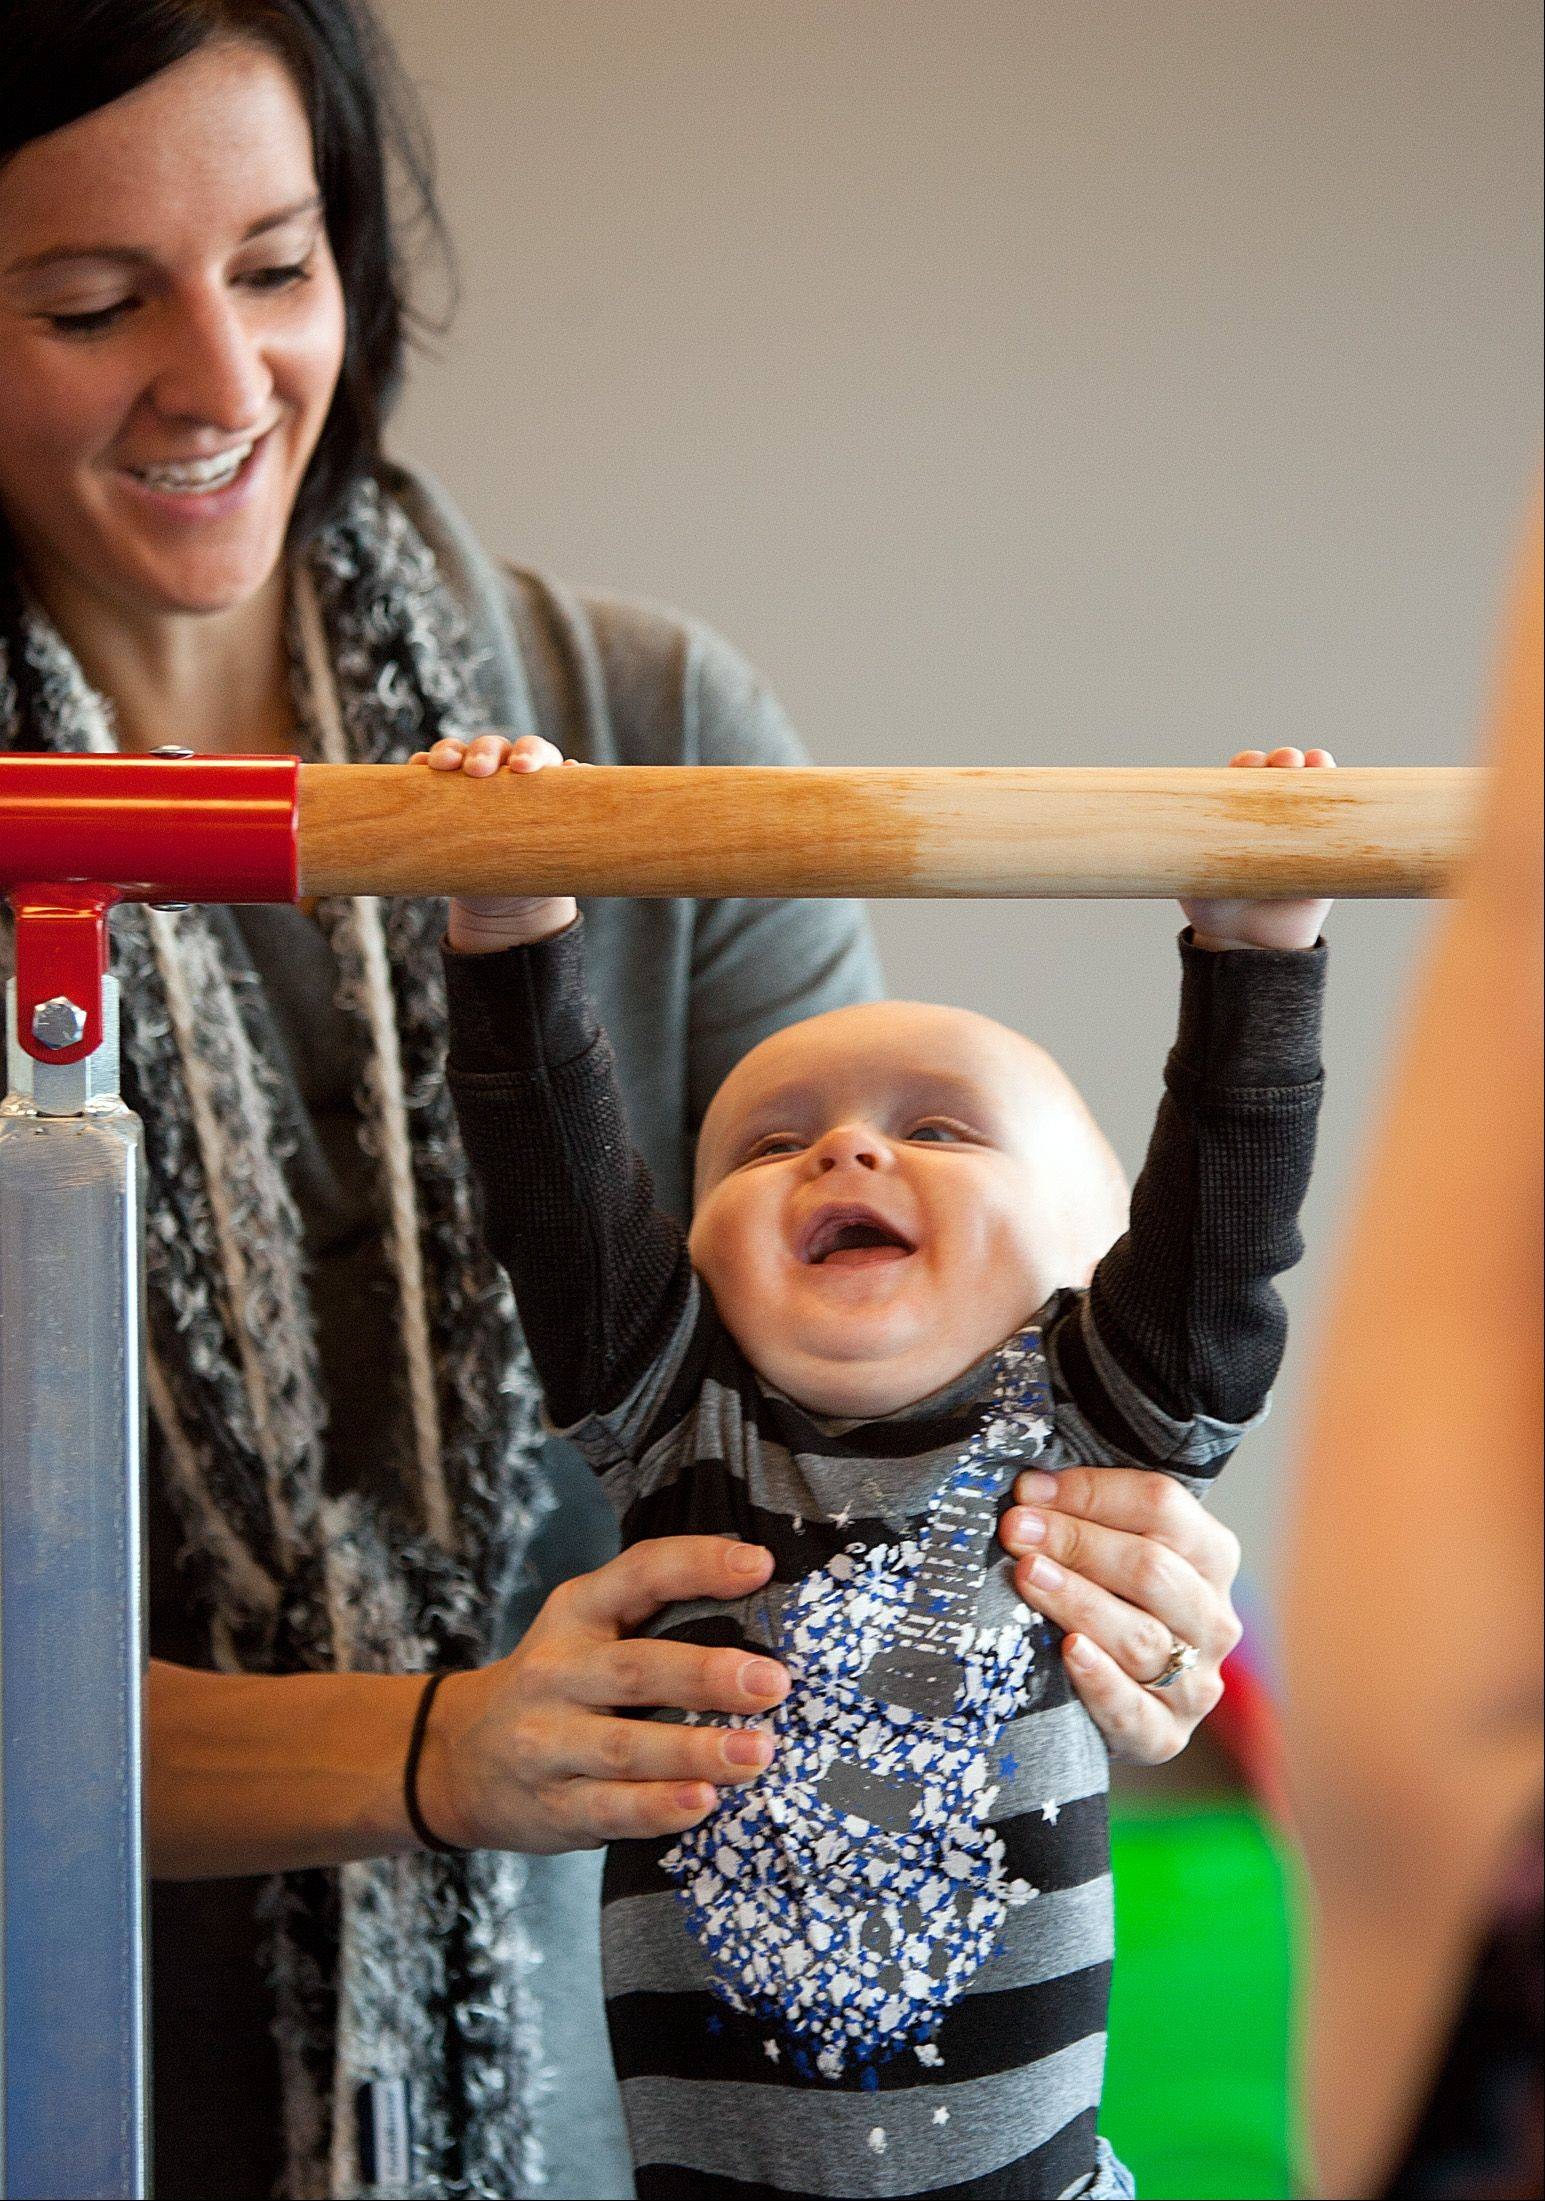 Bridgett Atwell of Mokena helps her 7-month-old son, Landon, hold onto the uneven bars Saturday in the gymnastics area of the Naperville Park District�s new 95th Street Center. The center hosted a grand opening Saturday morning for residents to explore its gymnastics, dance and culinary facilities.